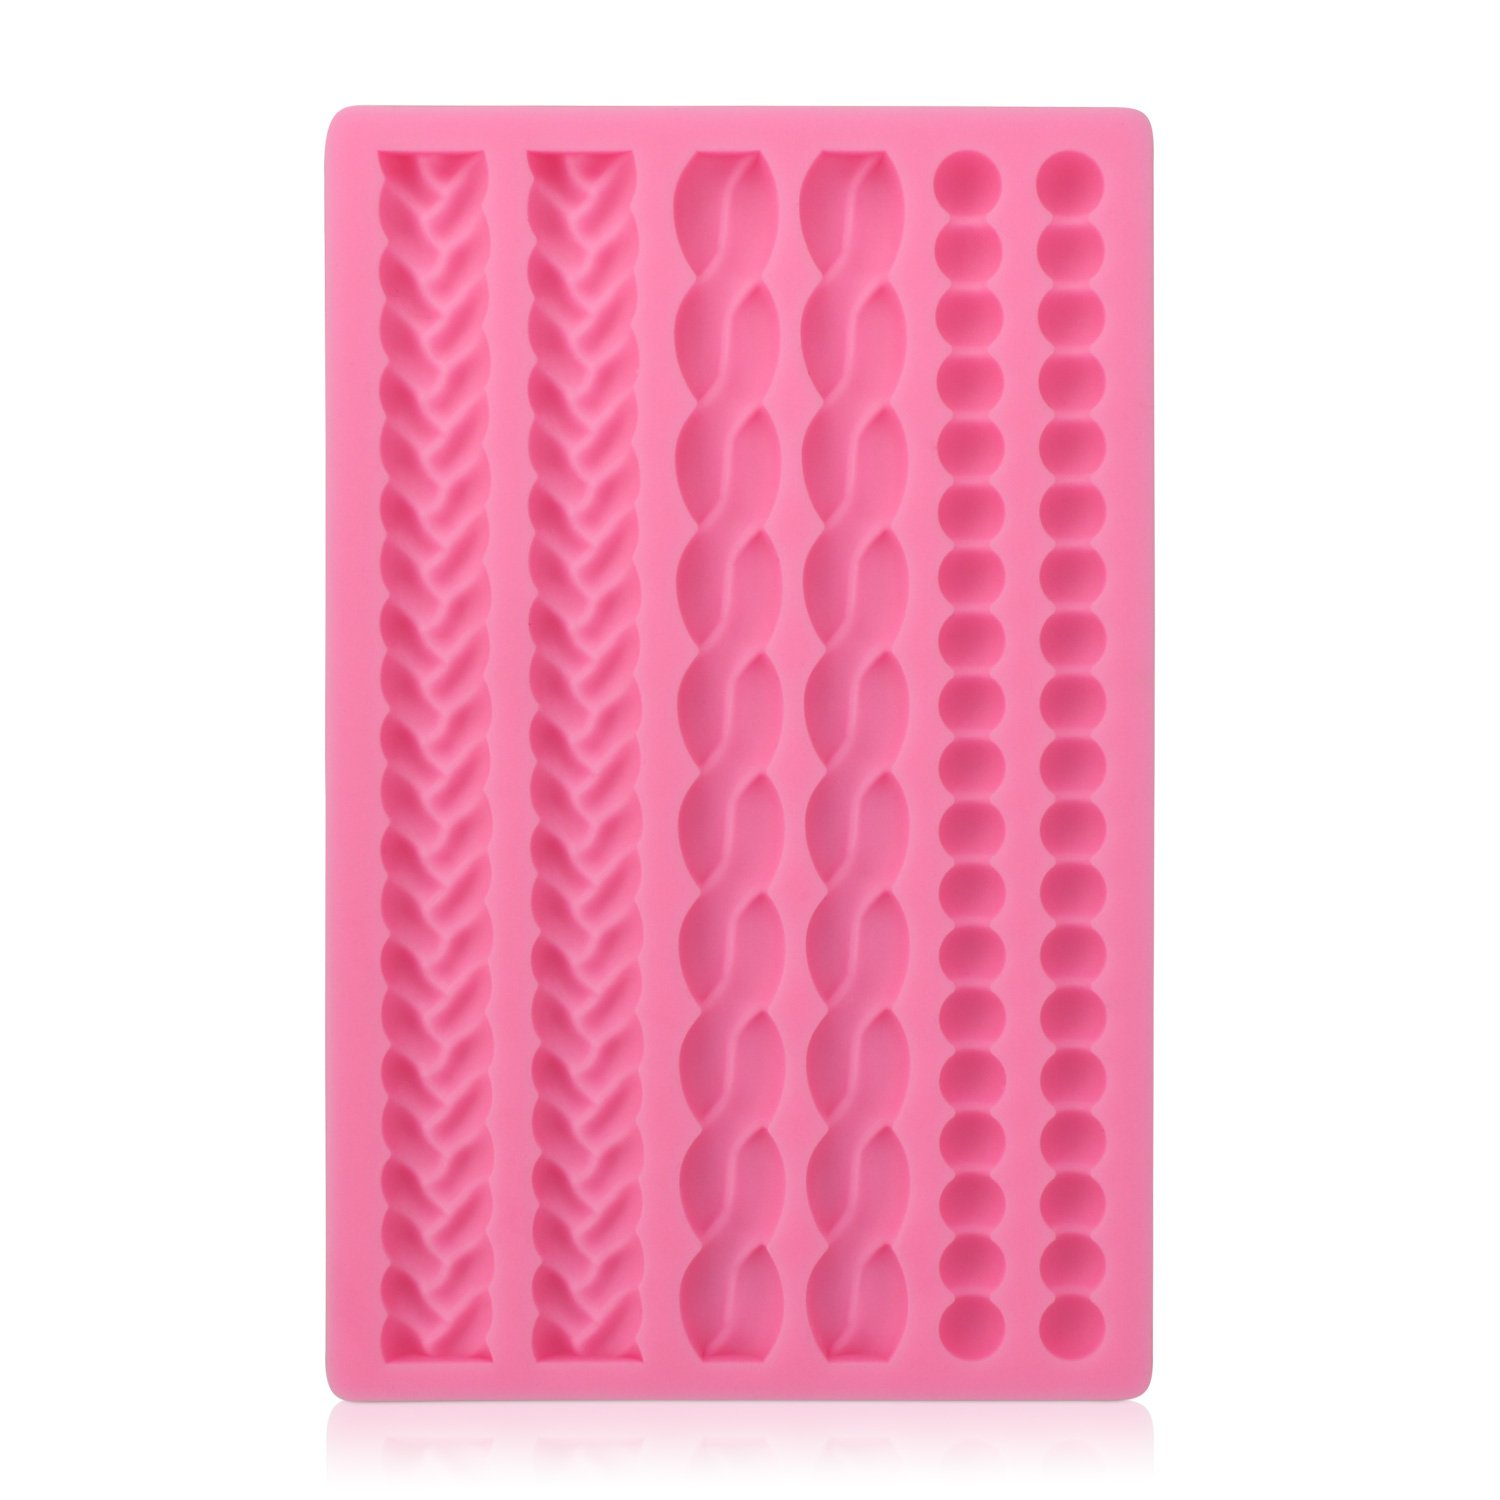 Rope String Molds, Beasea 3D Silicone Cake Decoration Molds Chocolate Fondant Cupcake Decorating Mold Sugarcraft Baking Mould Cookie Pastry Pies Cake Toppers